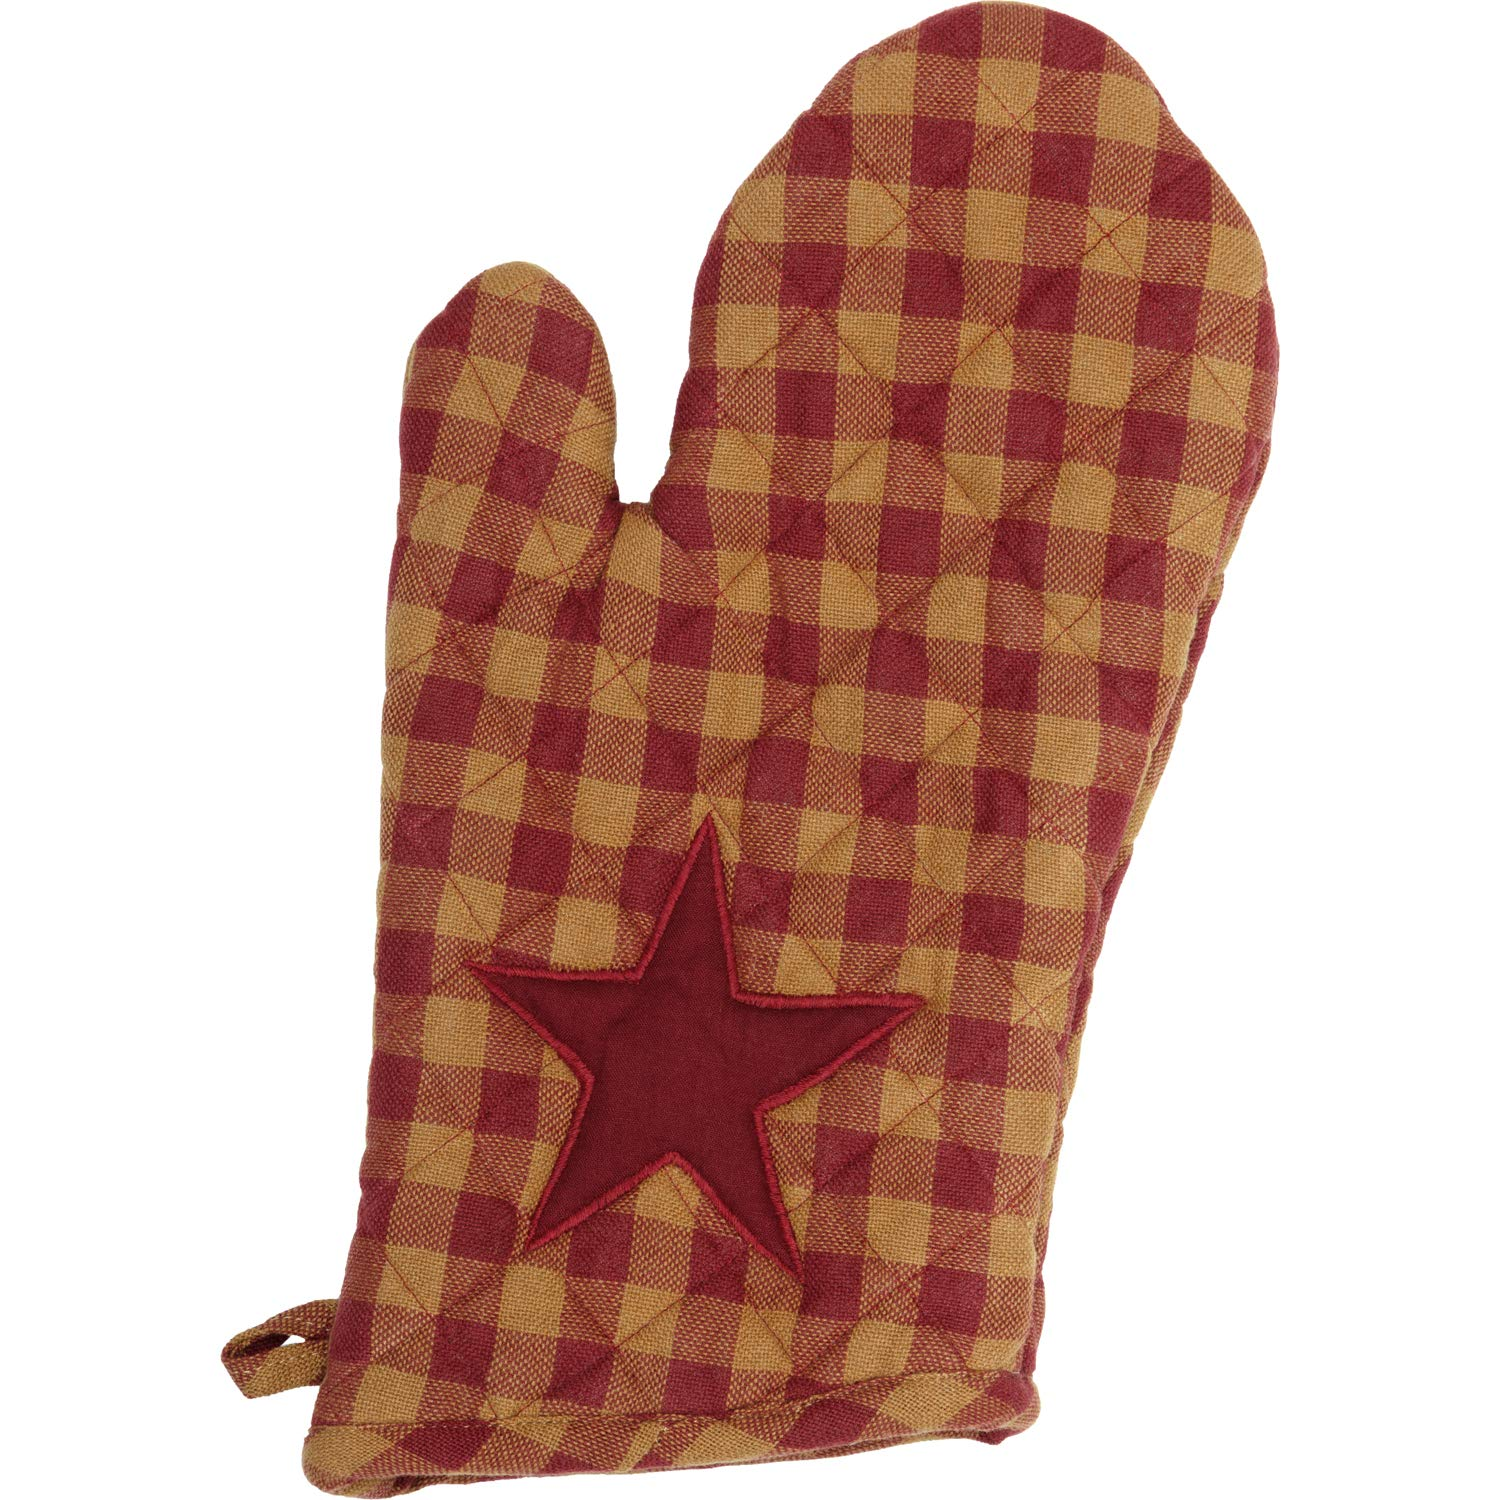 VHC Brands Primitive Tabletop Kitchen Cody Fabric Loop Cotton Appliqued Star Oven Mitt, Burgundy Red